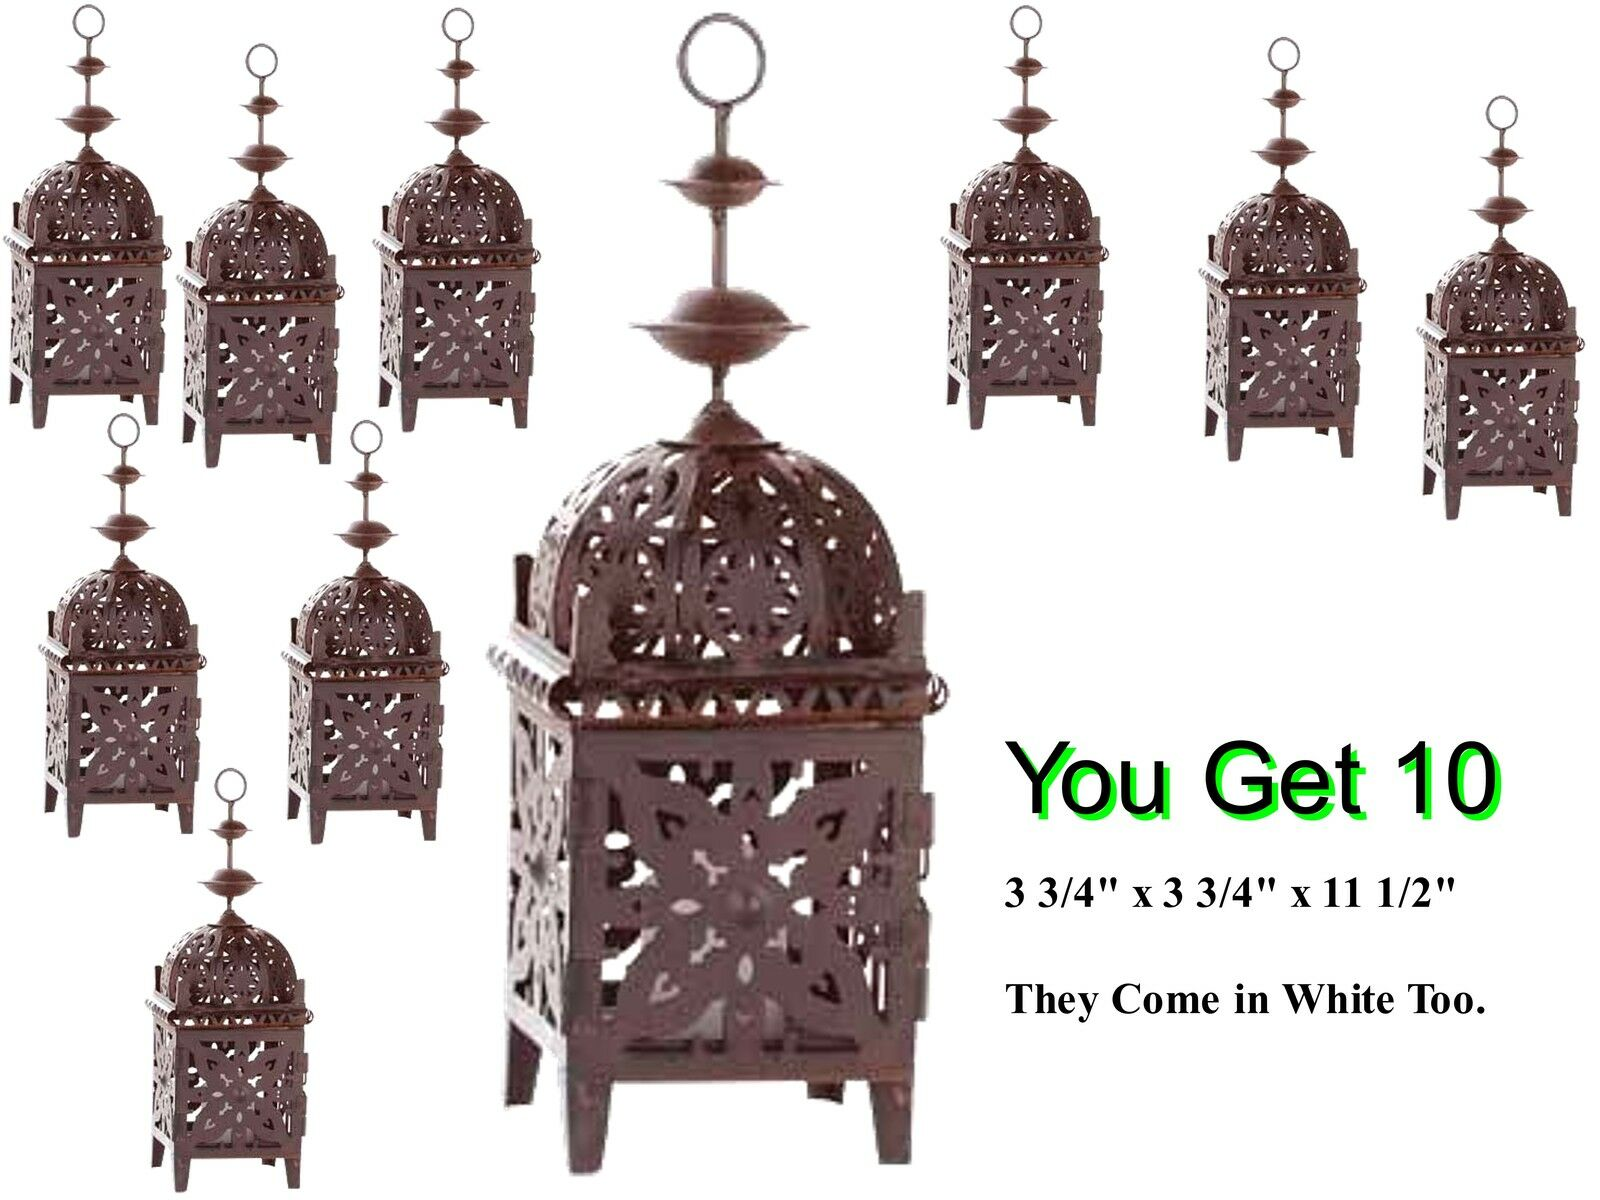 10 ROMANTIC MGoldCCAN STYLE LANTERNS CANDLE HOLDER 11